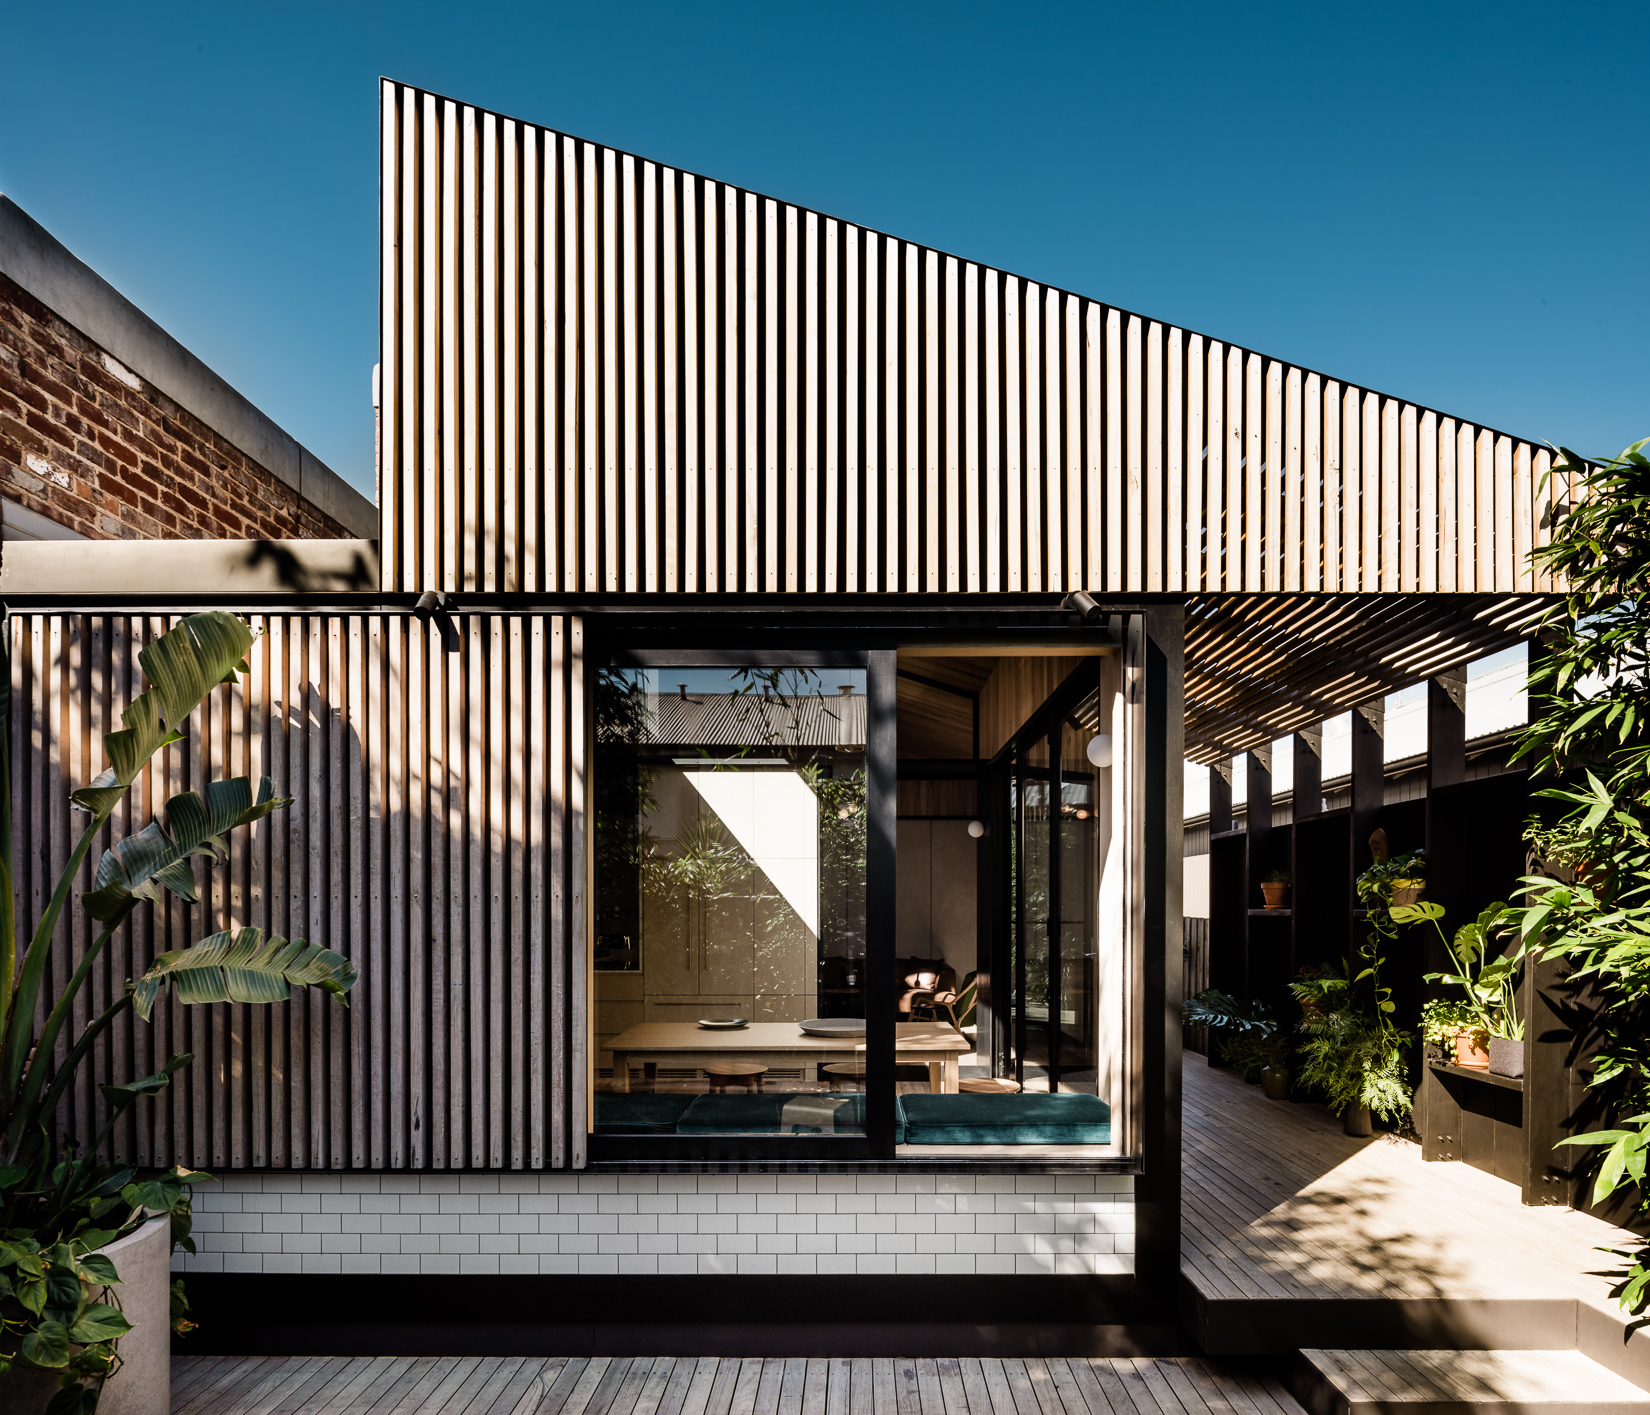 This Semi Detached Workeru0027s Cottage In Cremorne, Melbourne, Was At The  U0027point Of No Returnu0027. Home To Architect Michael Artemenko, Co Director Of  FIGR, ...